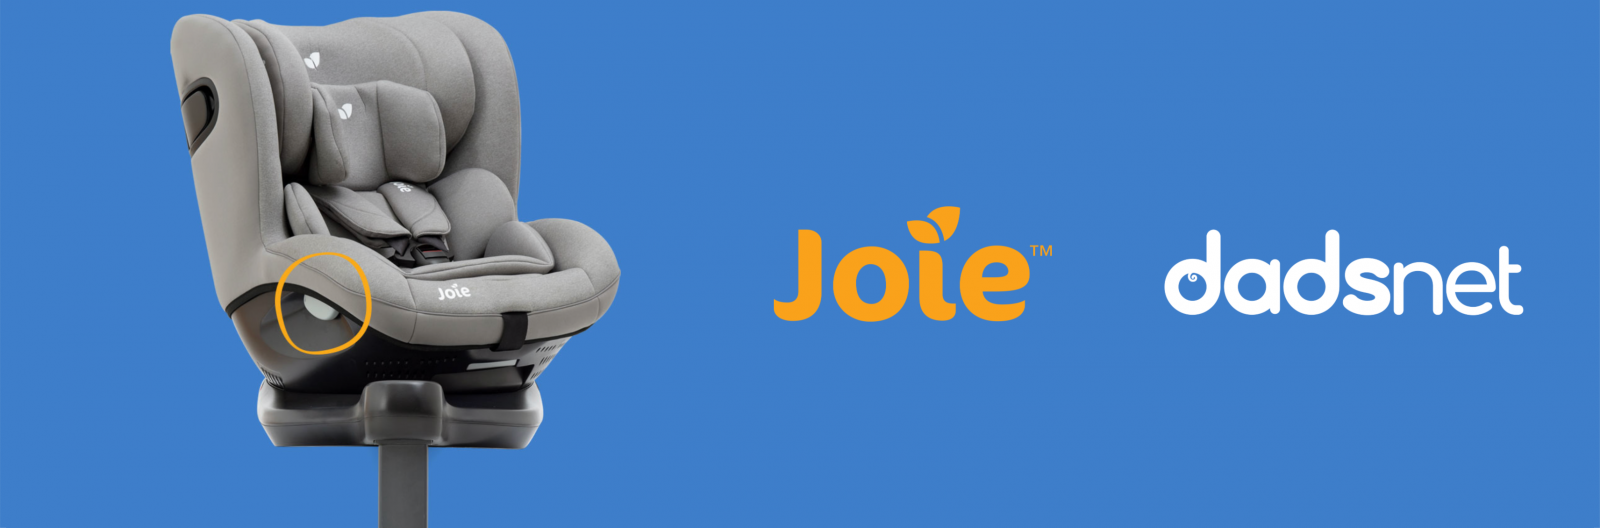 Five Fun Games to Play on Long Car Journeys, Joie Banner Stroller 2 1600x528%, daily-dad%